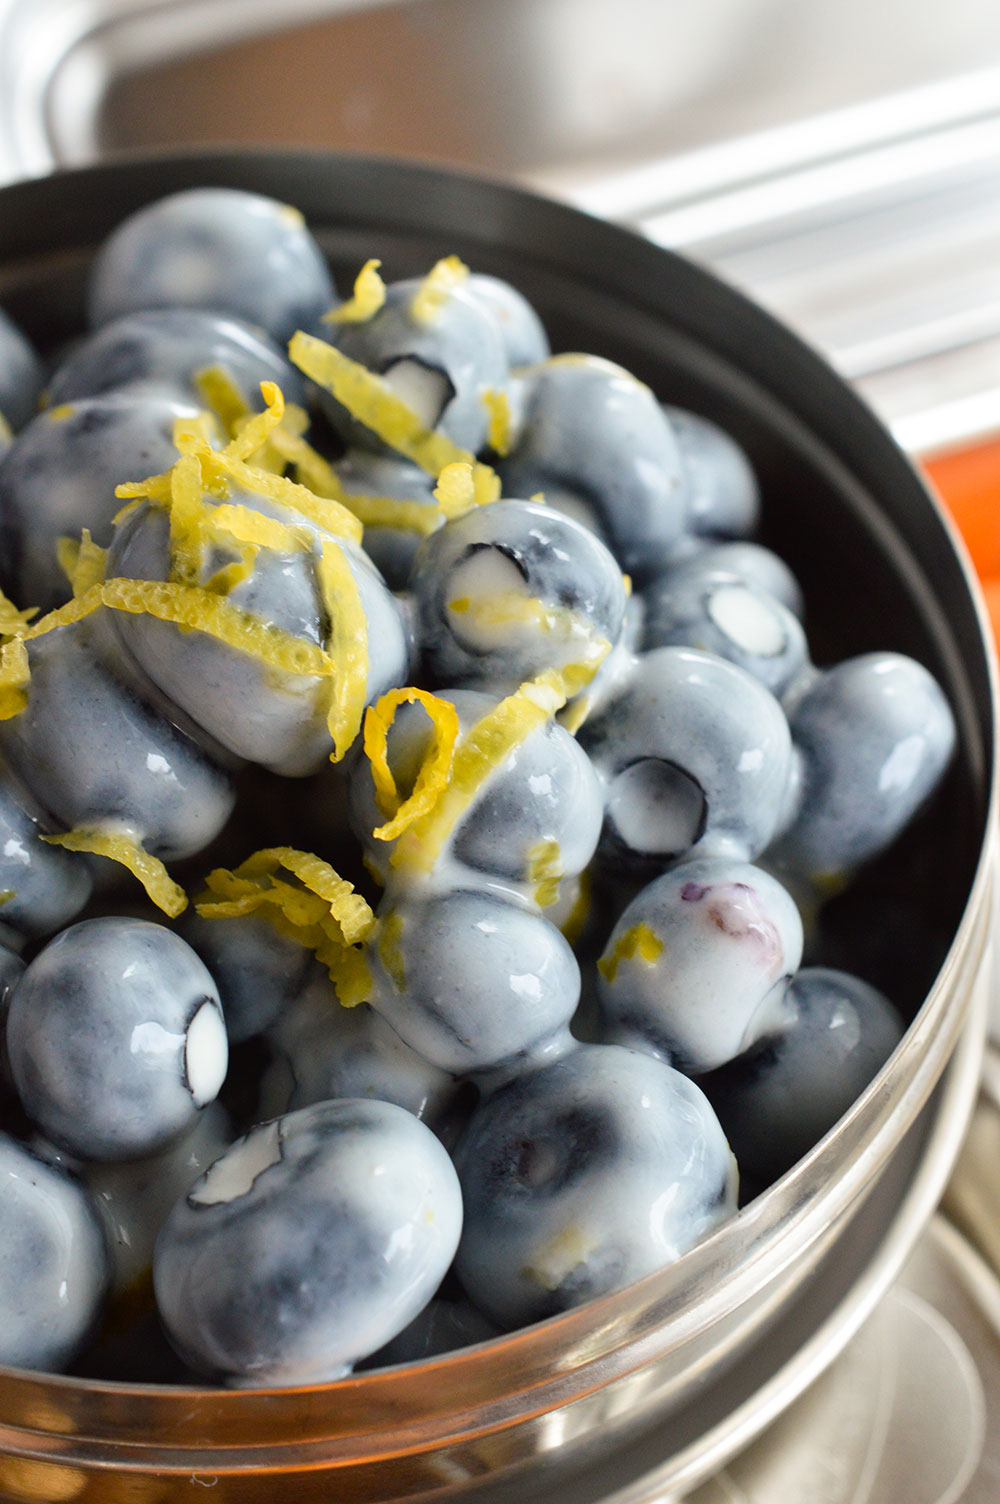 Healthy School Lunch Ideas - The kids will love this fun and flavorful lunch. But don't worry Moms; it is quick and easy too! This Lemon Blueberry Salad will be a hit!